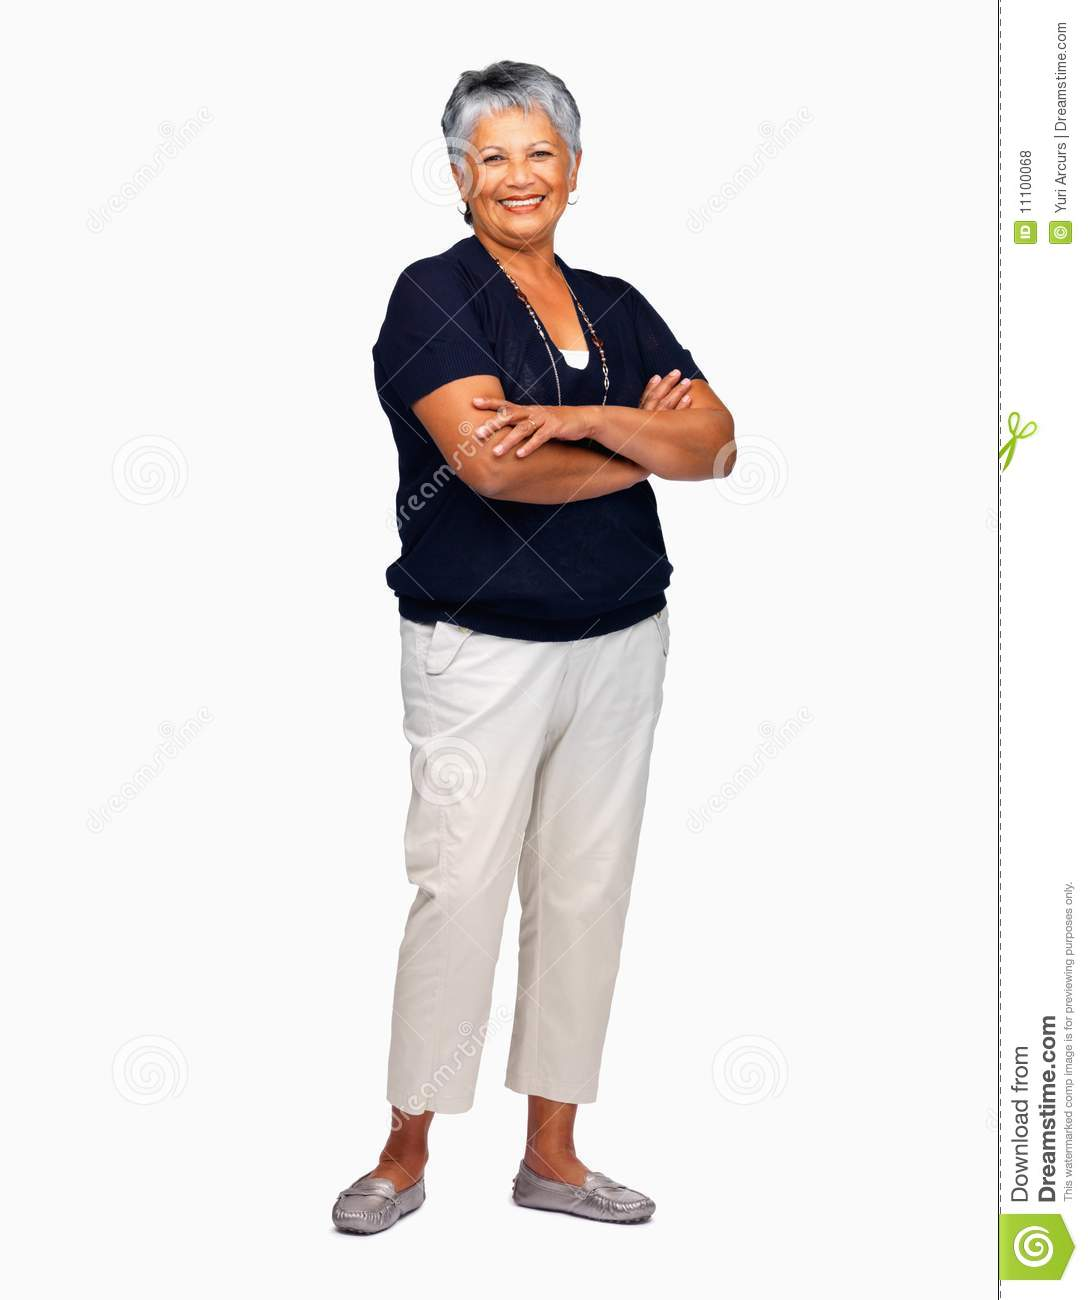 happy-elderly-woman-standing-isolated-wh